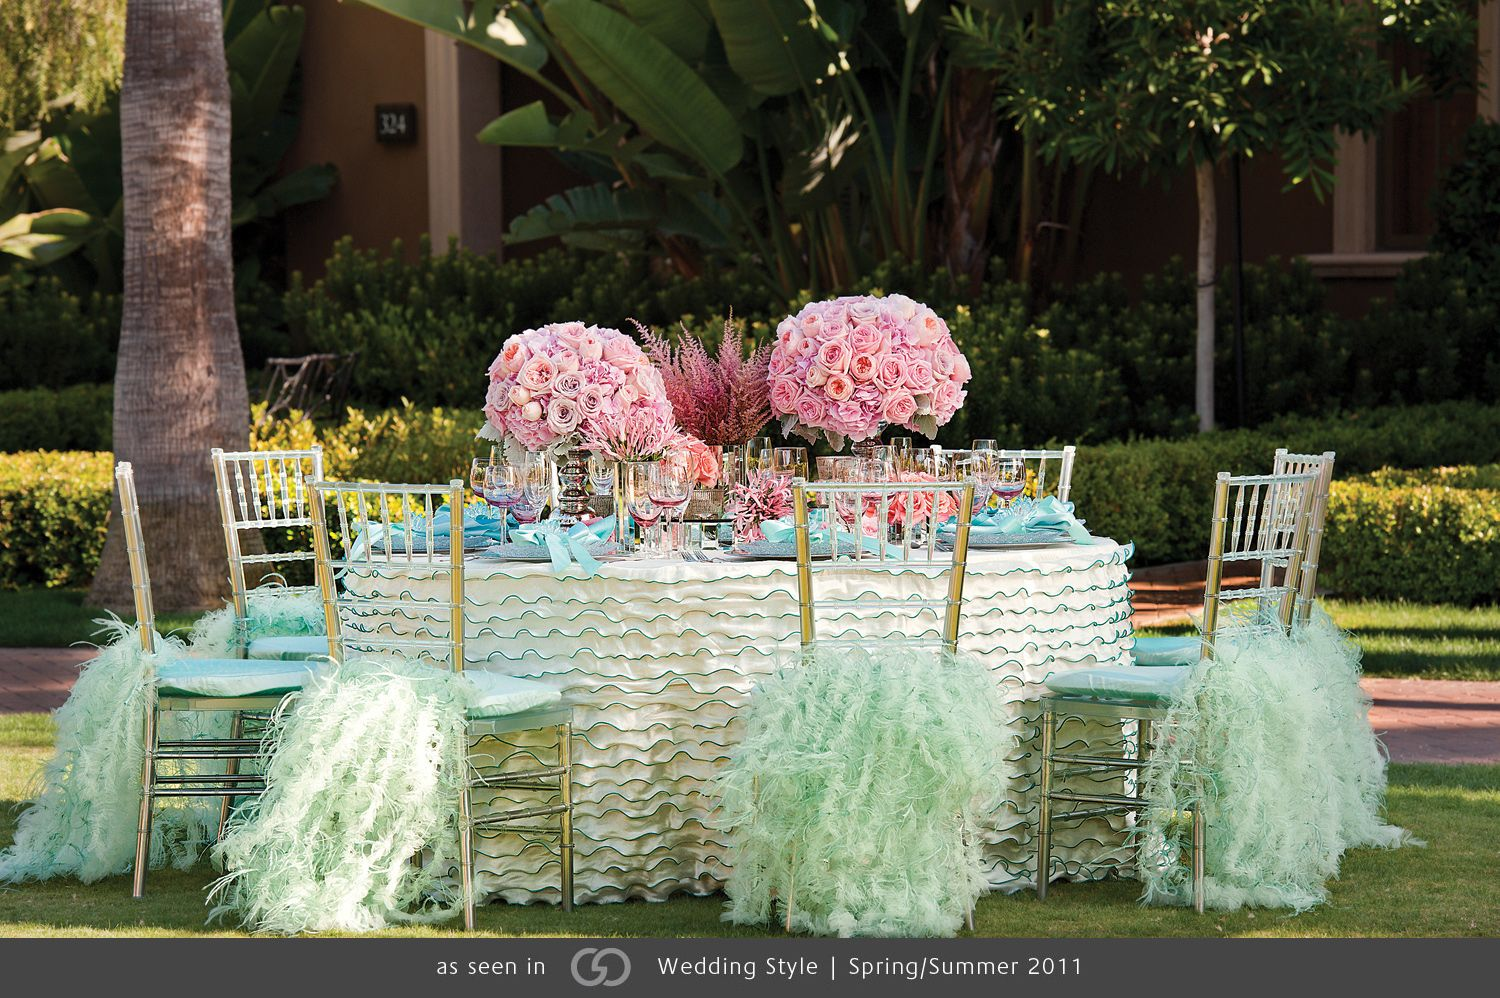 Decor for chairs wedding Iridescent ivory taffeta with aqua accents showcasing pavé of pink